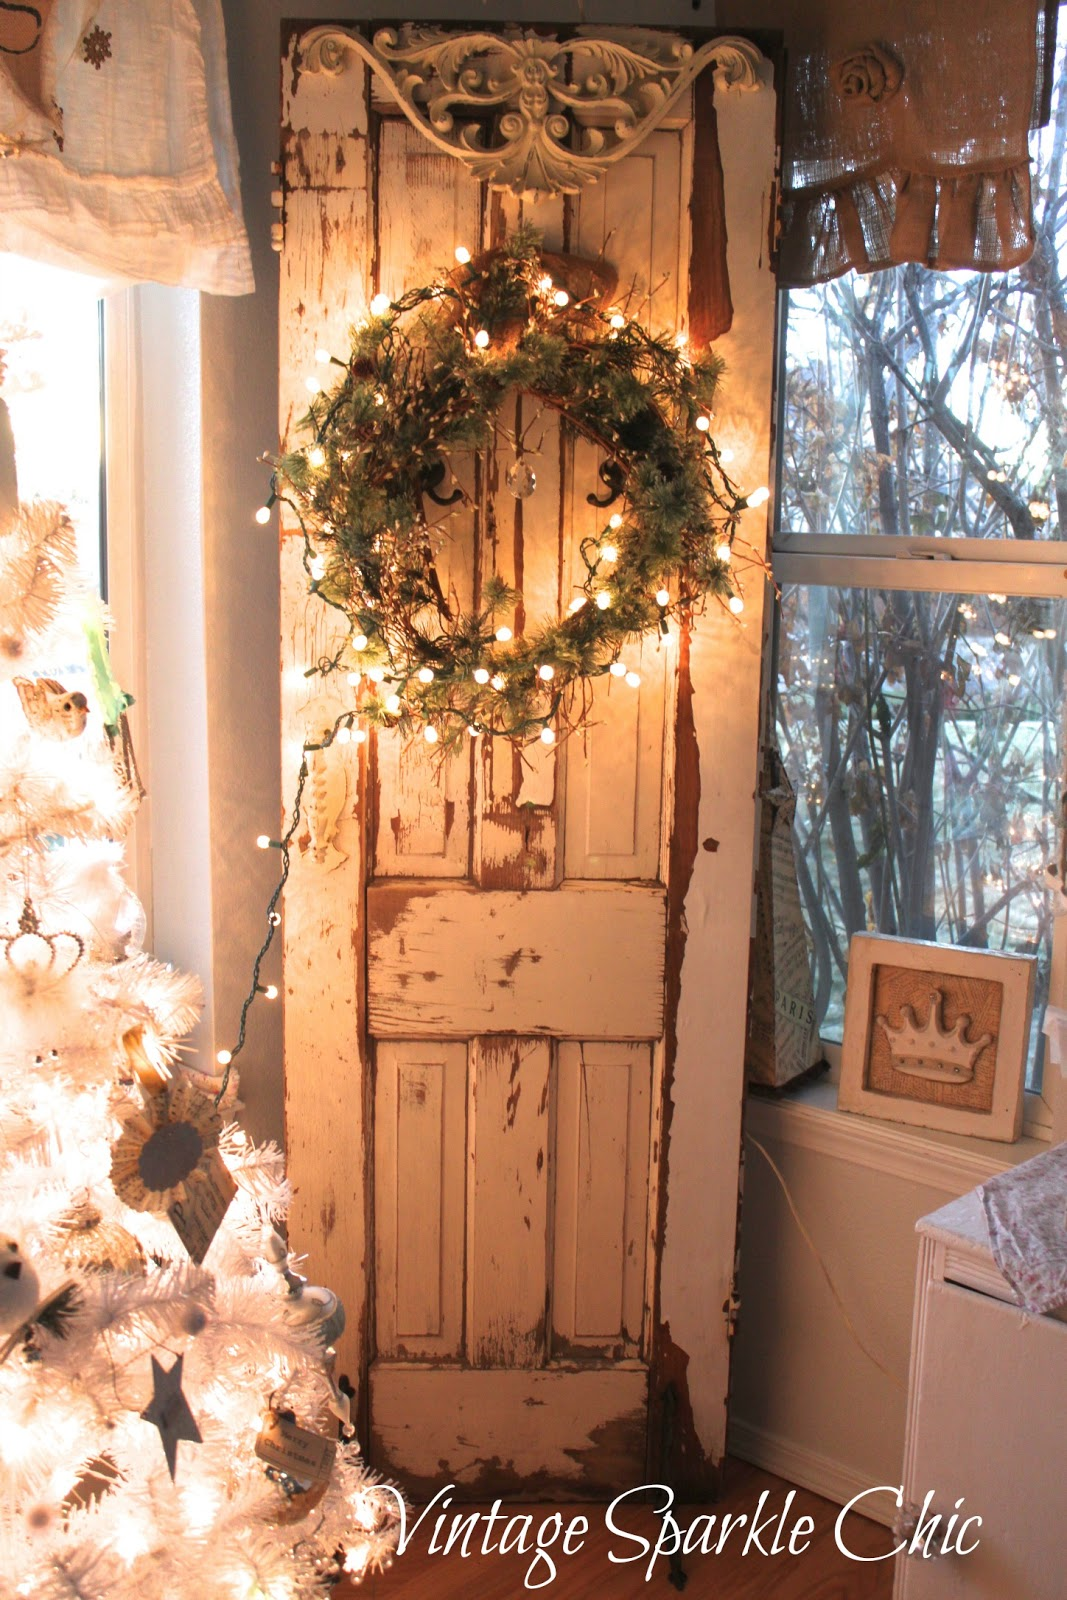 Antique Home Decor Ideas Vintage Sparkle Chic French Shabby Christmas Decorations